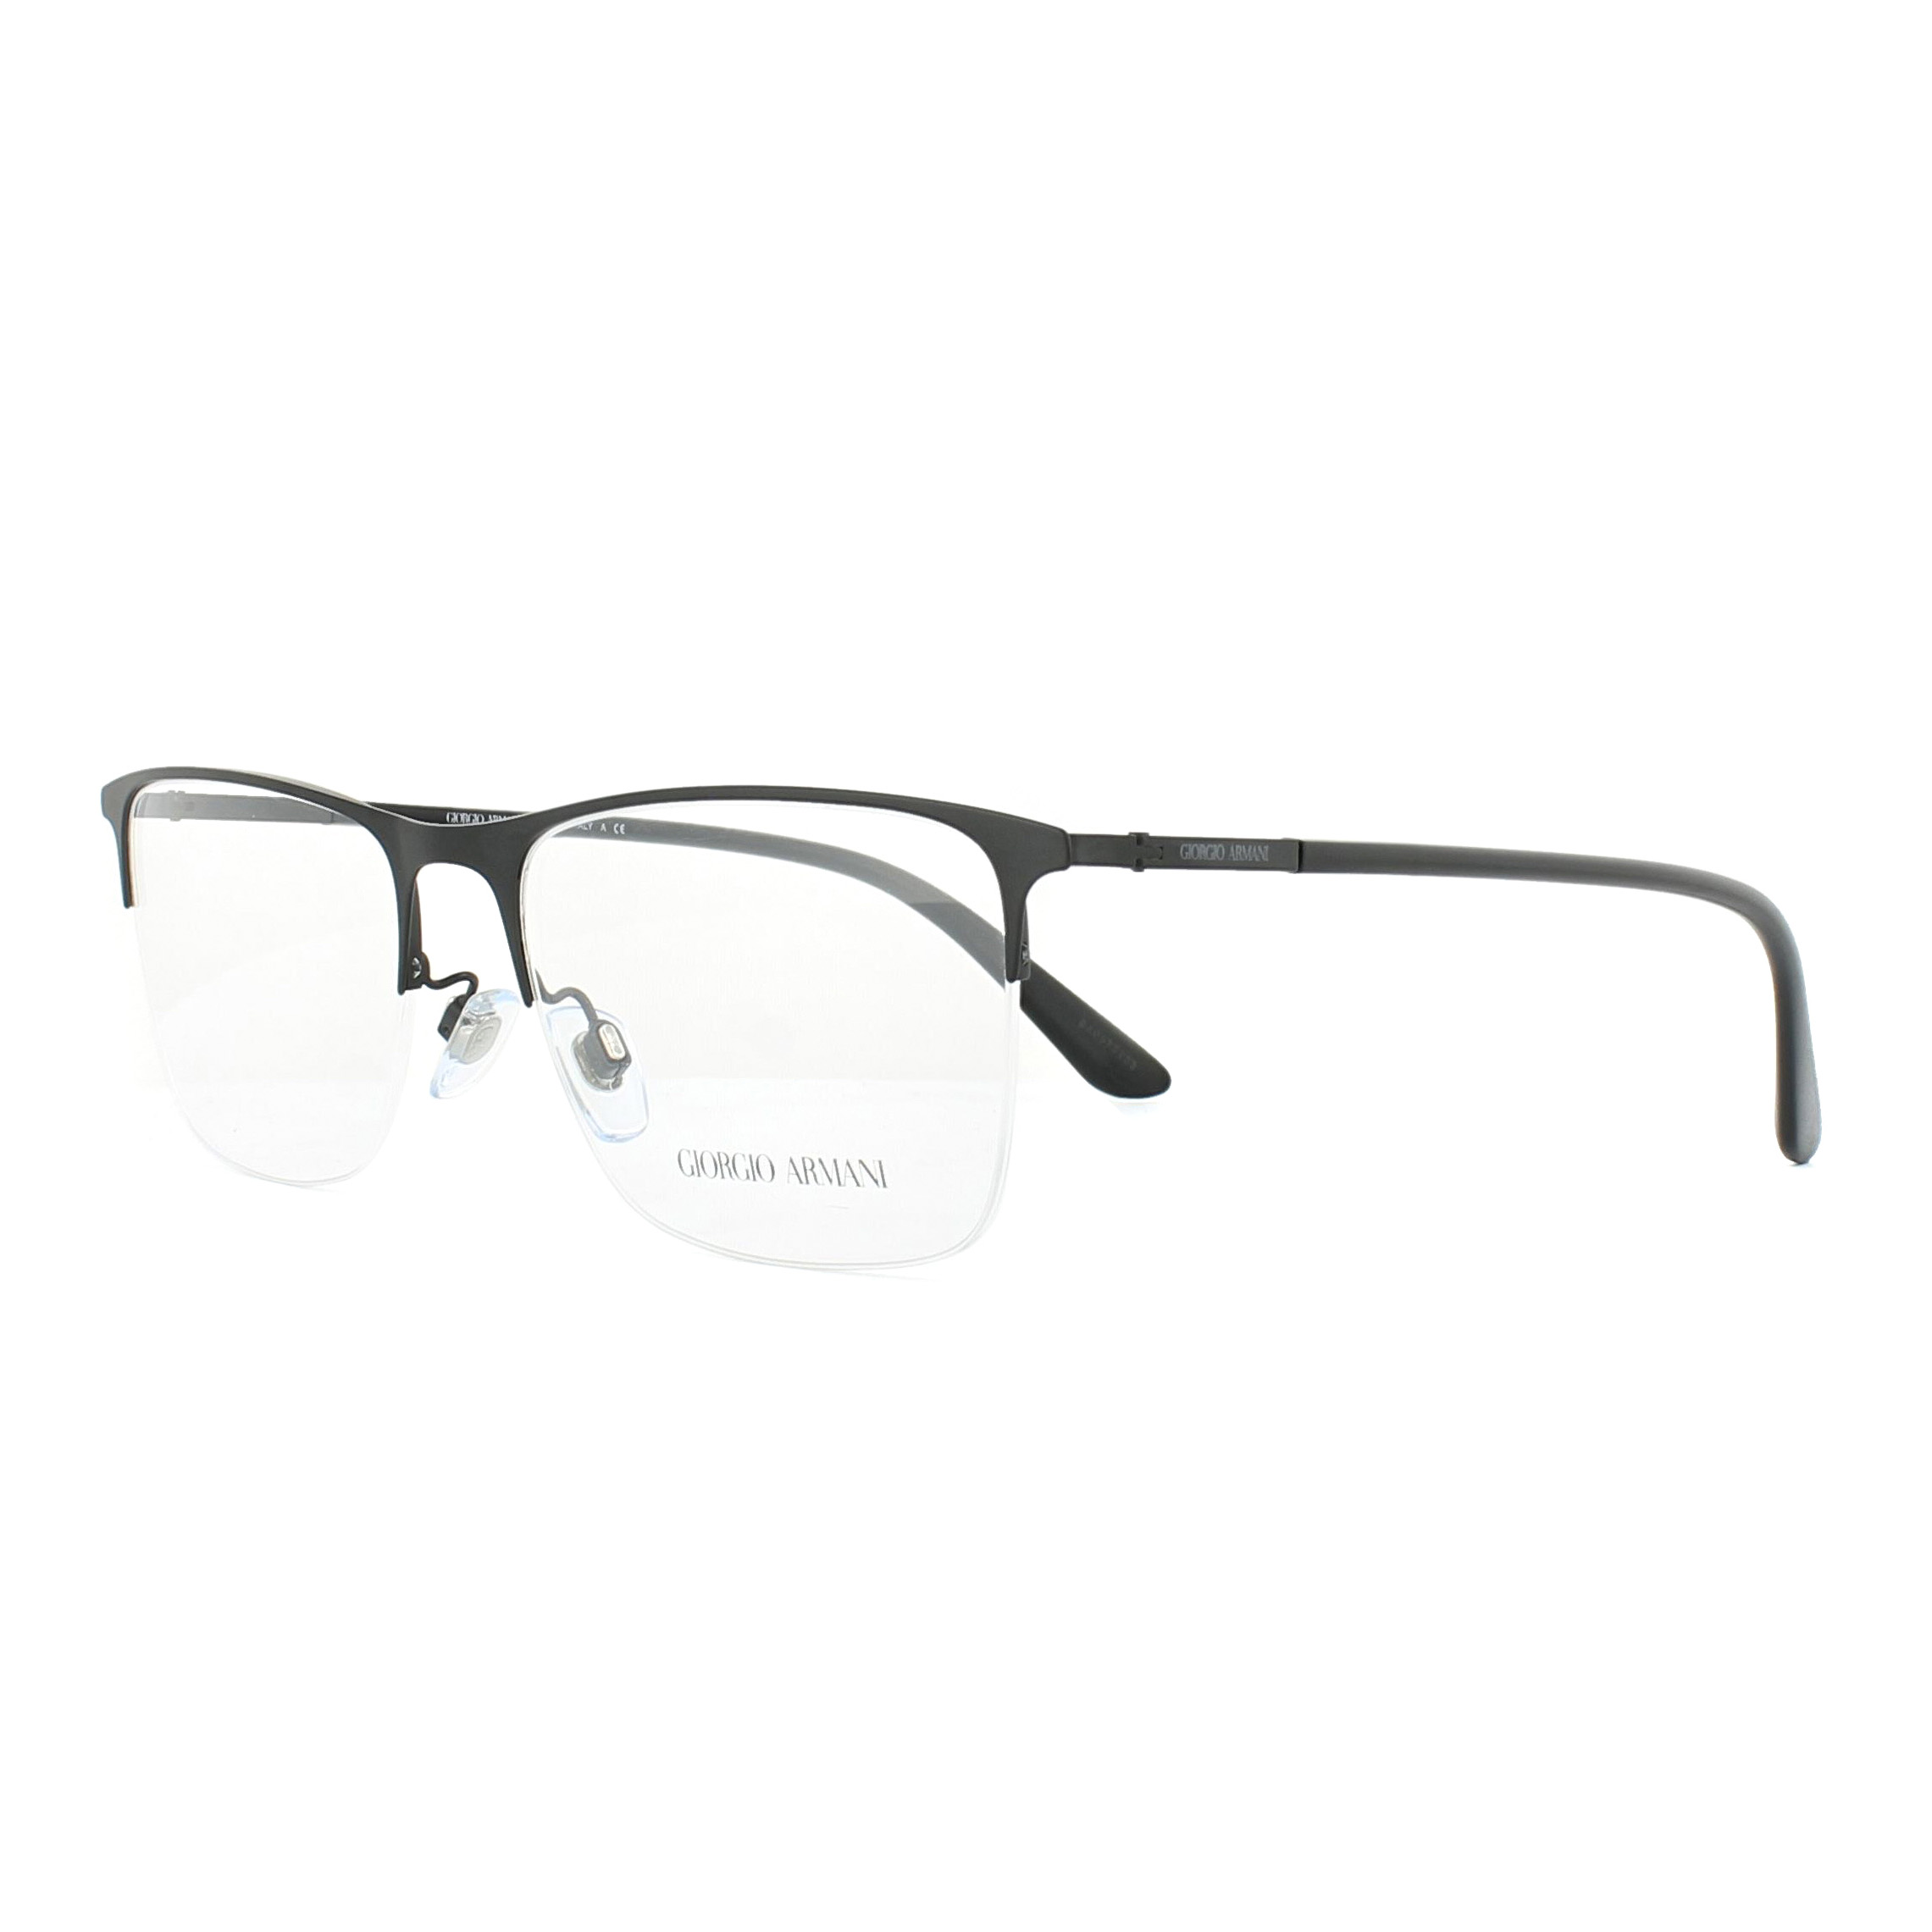 4c98606cf1f Details about Giorgio Armani Glasses Frames AR5072 3001 Matte Black 55mm  Mens